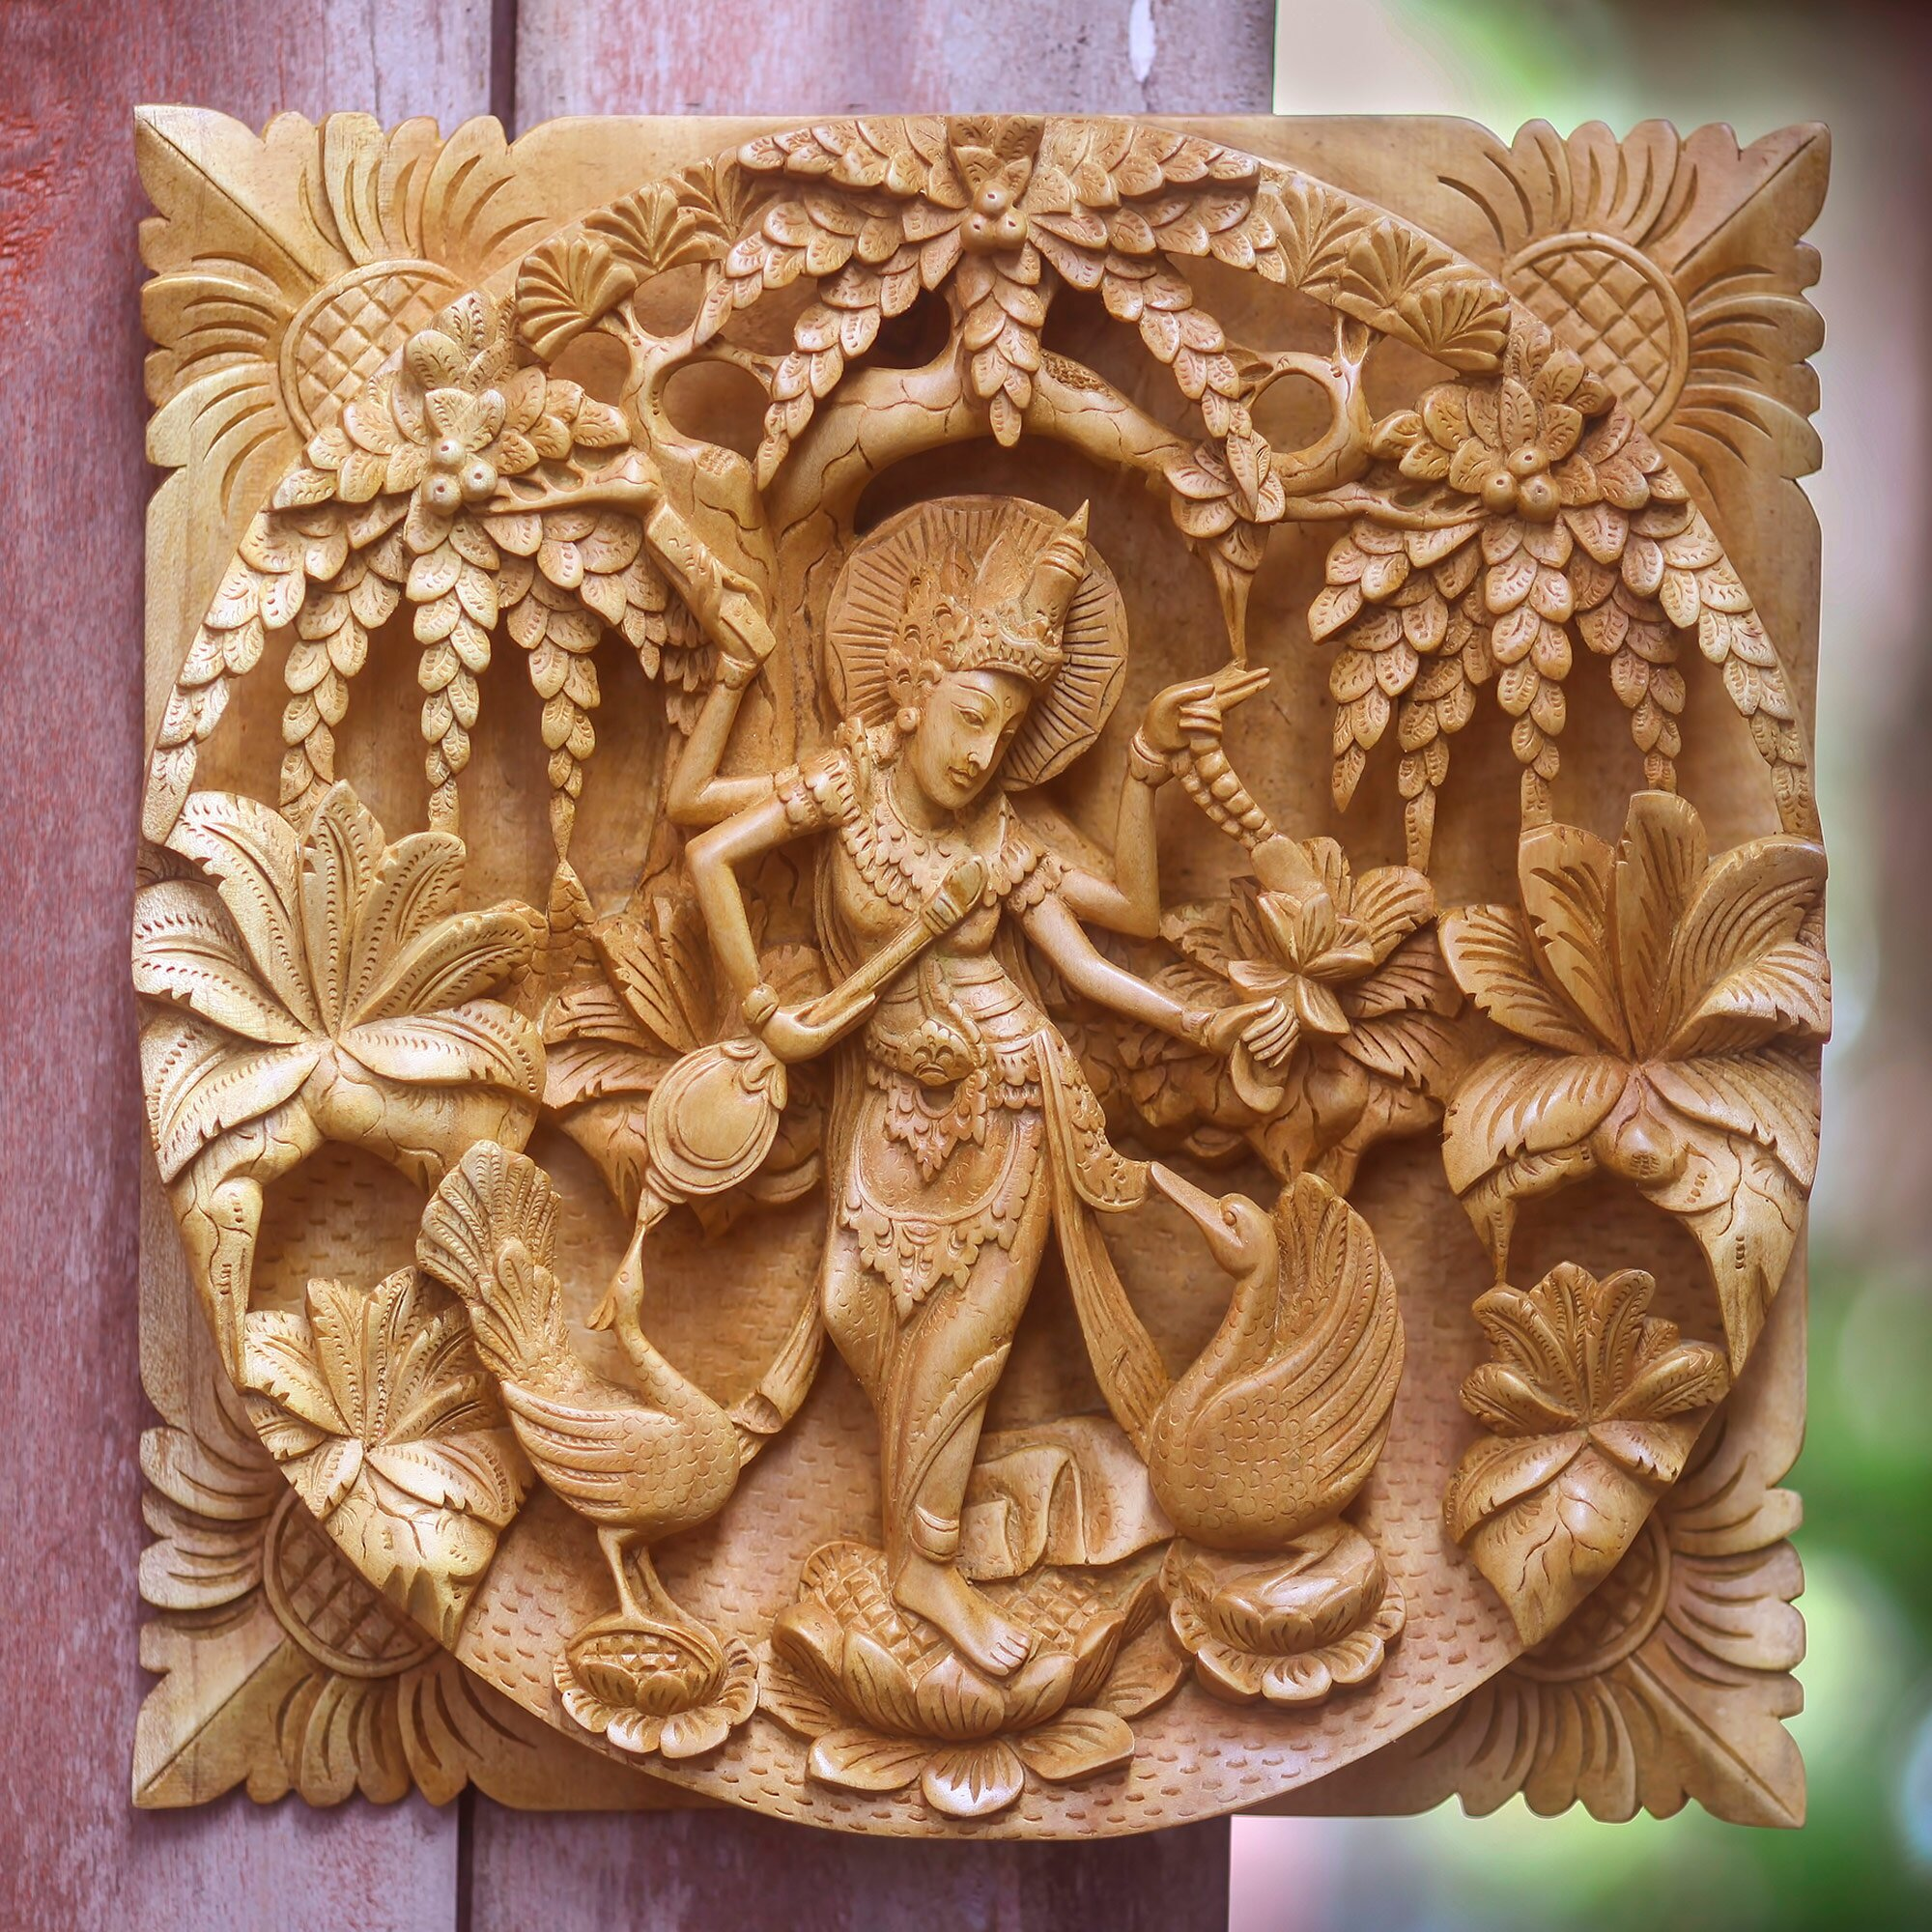 Wood Carved Wall Decor Novica Hindu Goddess Themed Carved Wood Relief Panel Wall Dccor